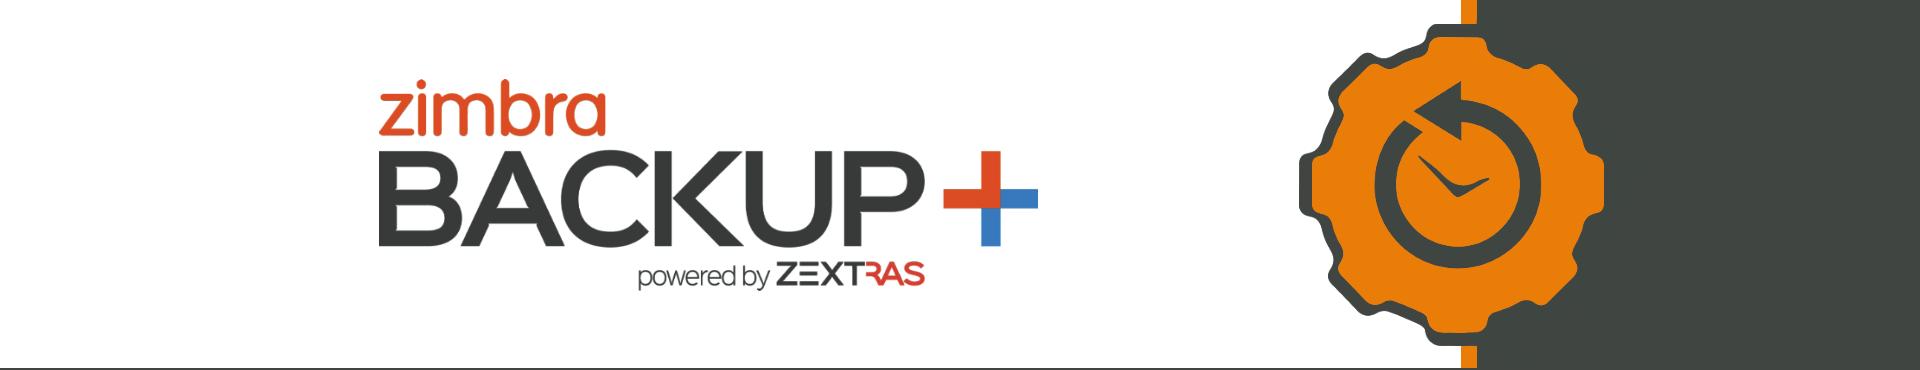 Zimbra-Backup-Plus-banner.png